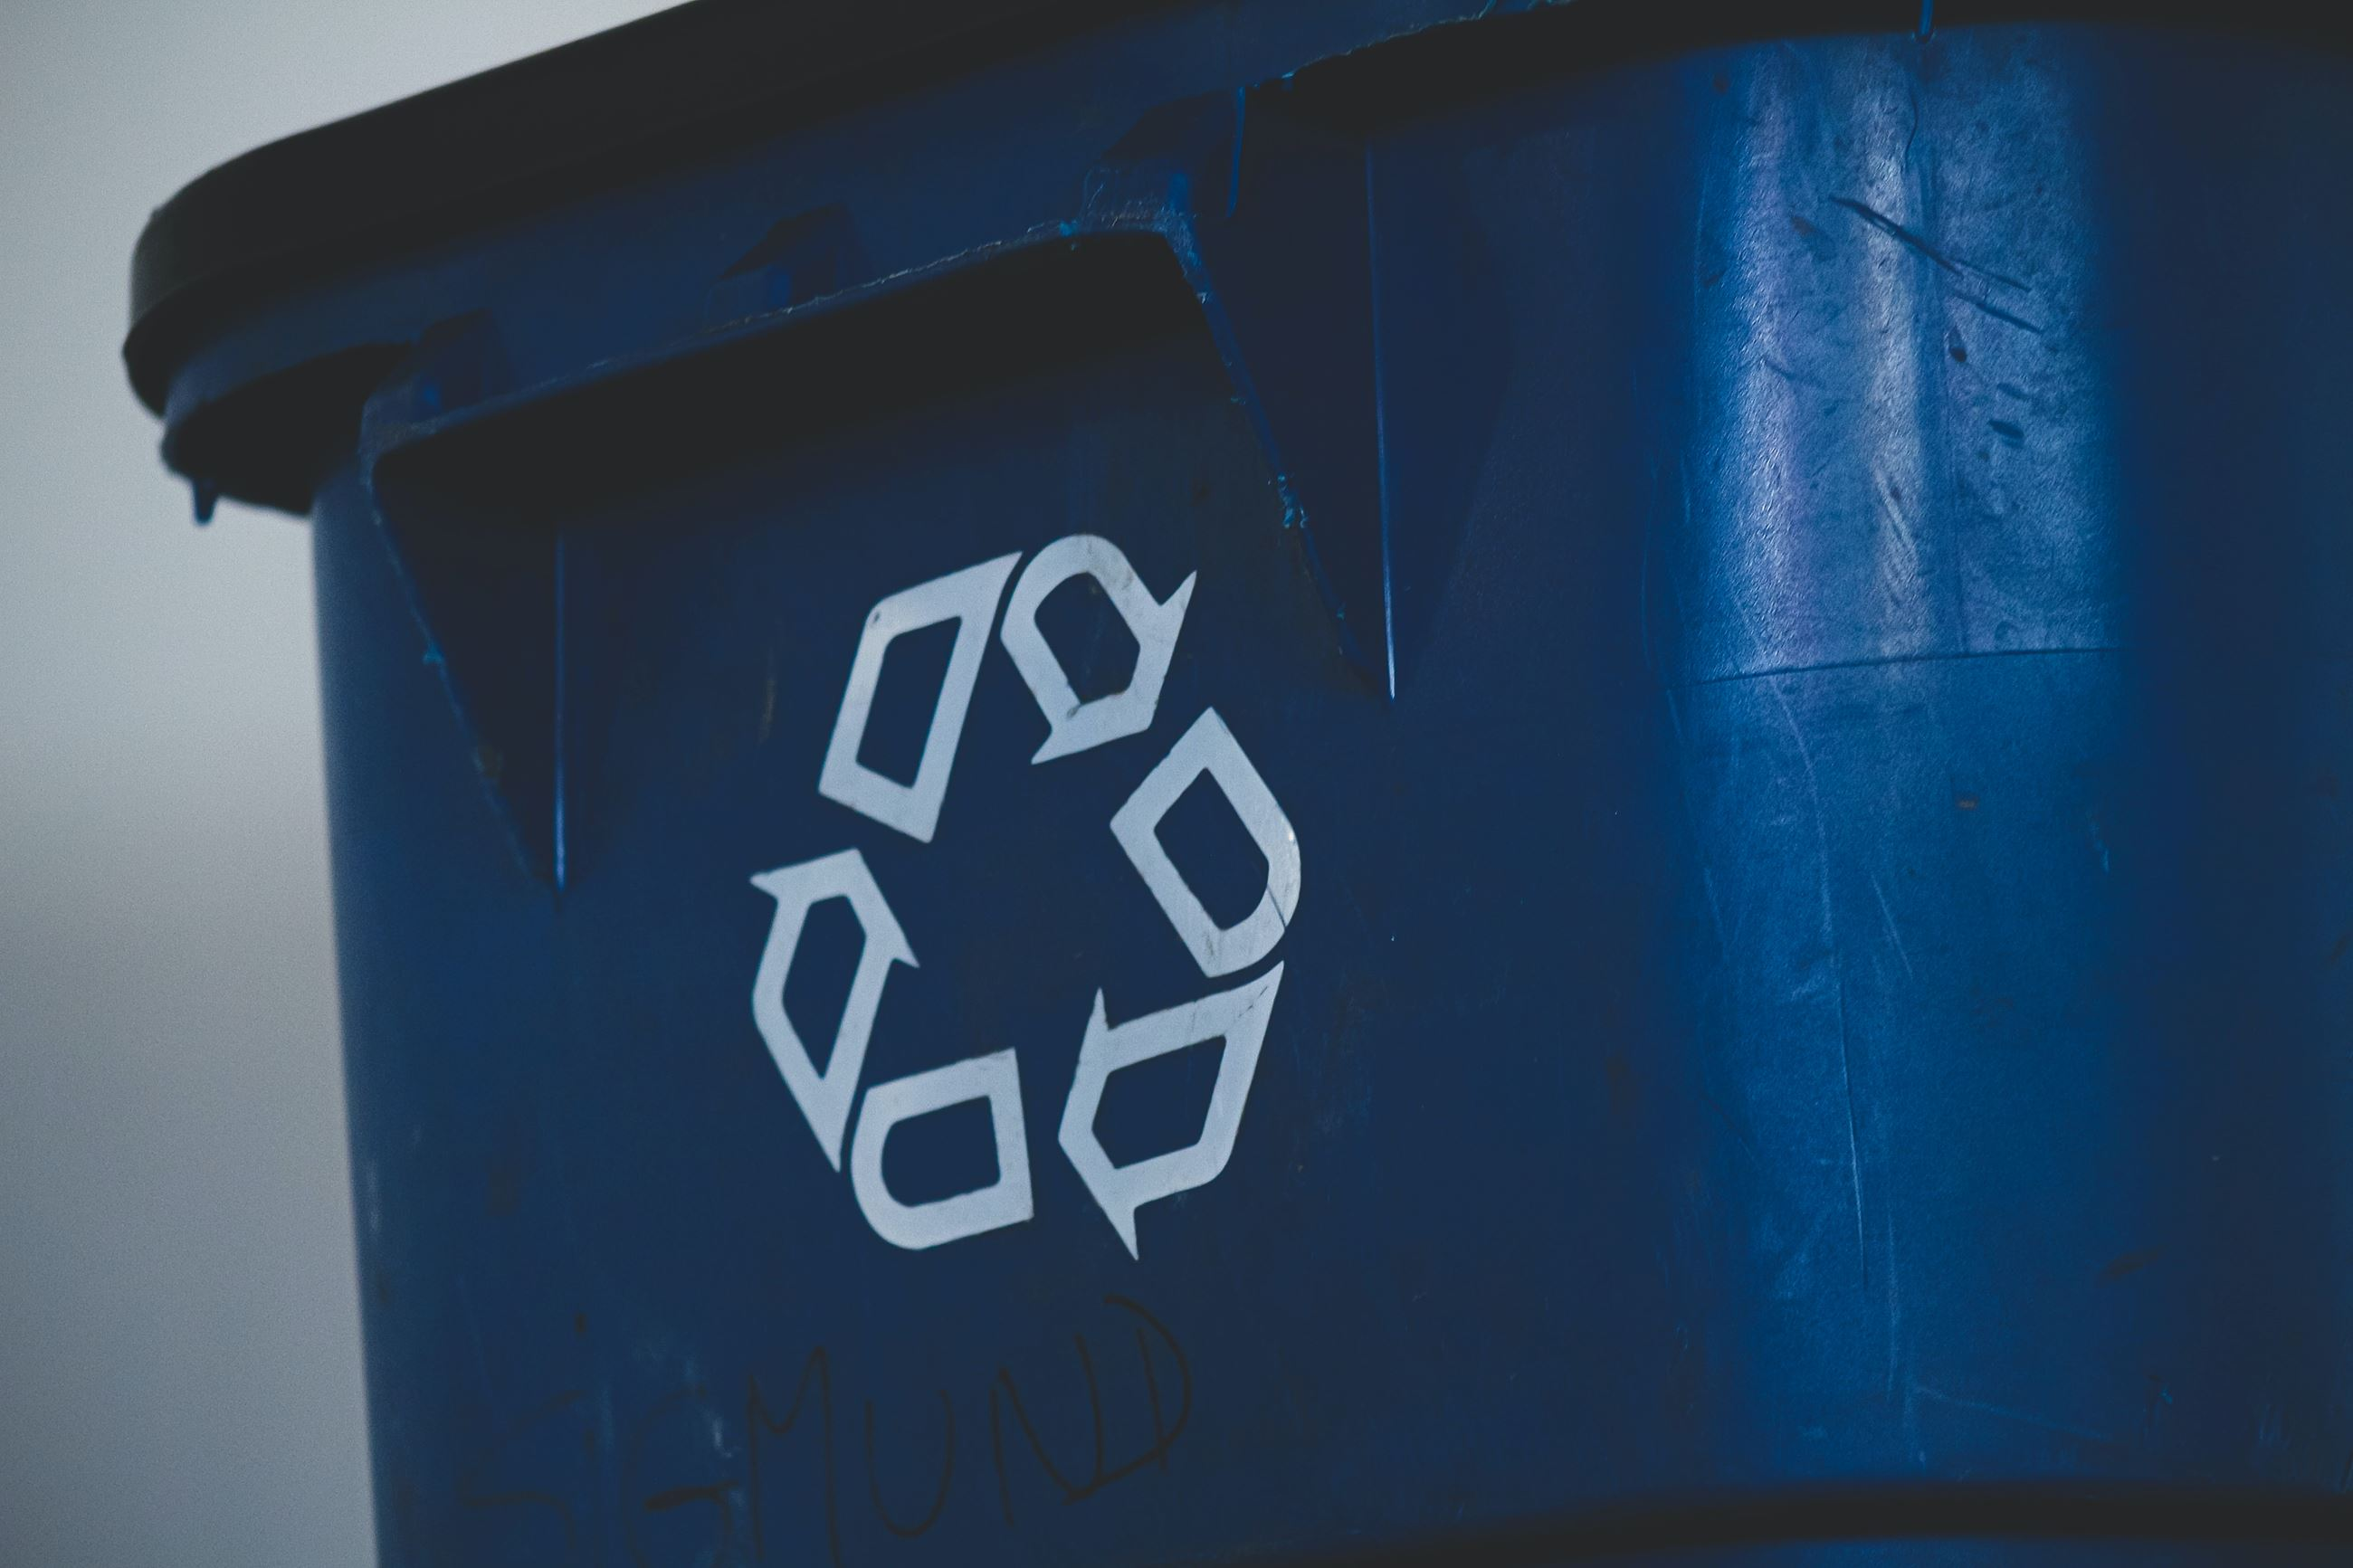 Recycling Symbol on the side of a trash can